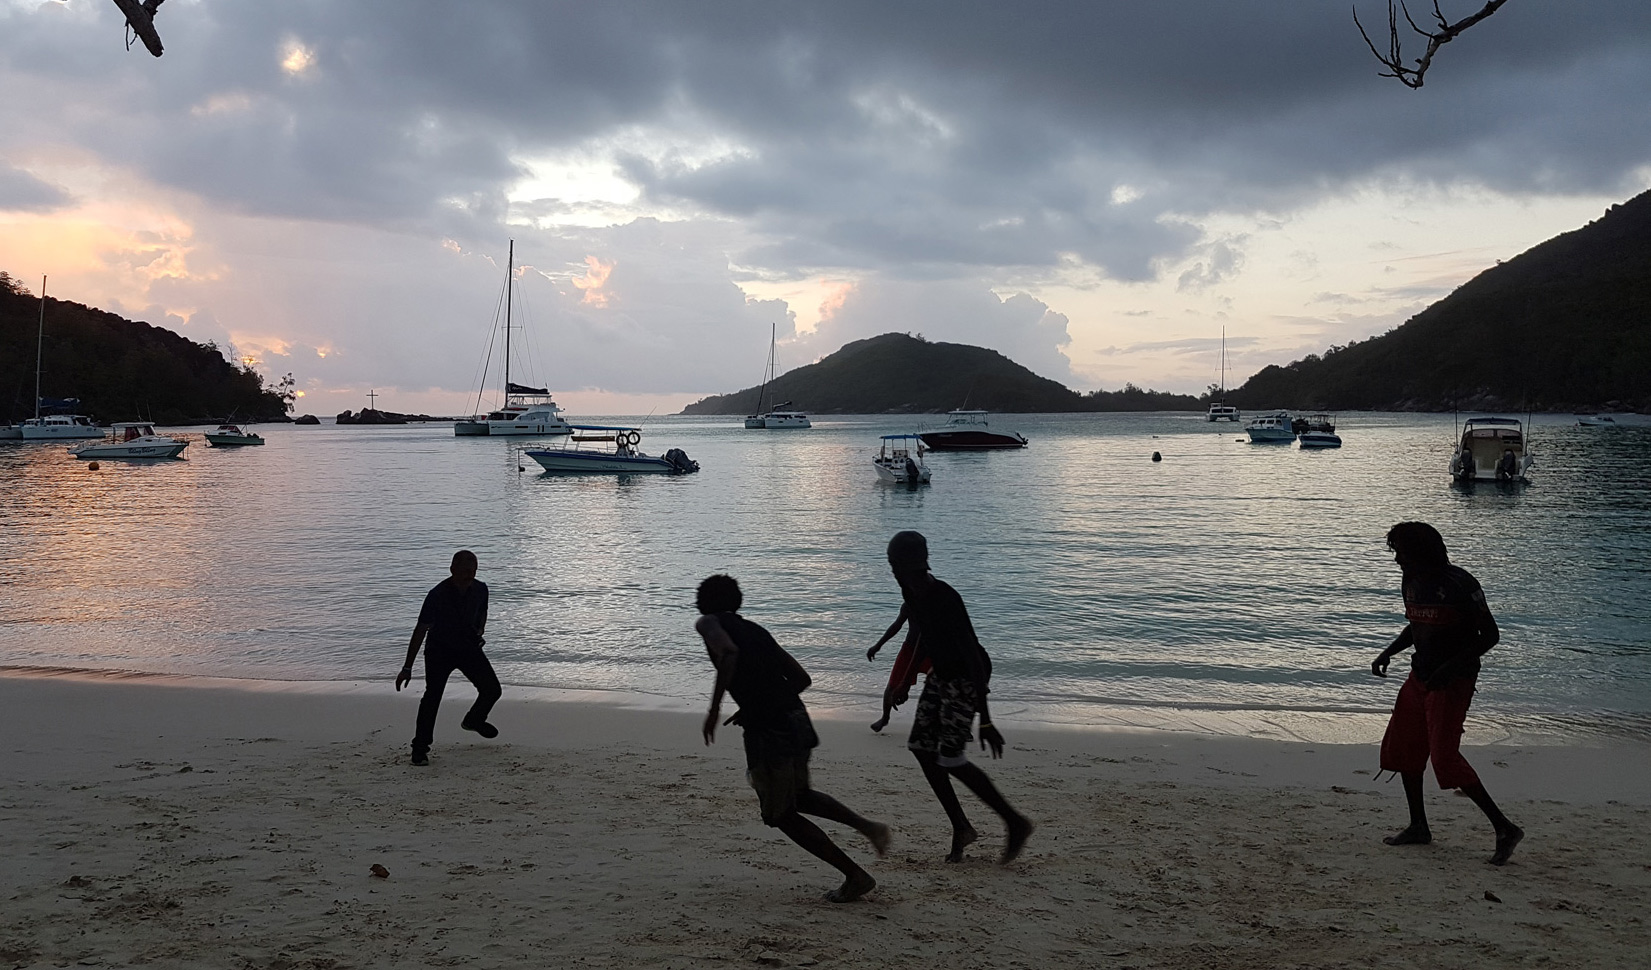 Playing through the sunset, Mahe, Seychelles